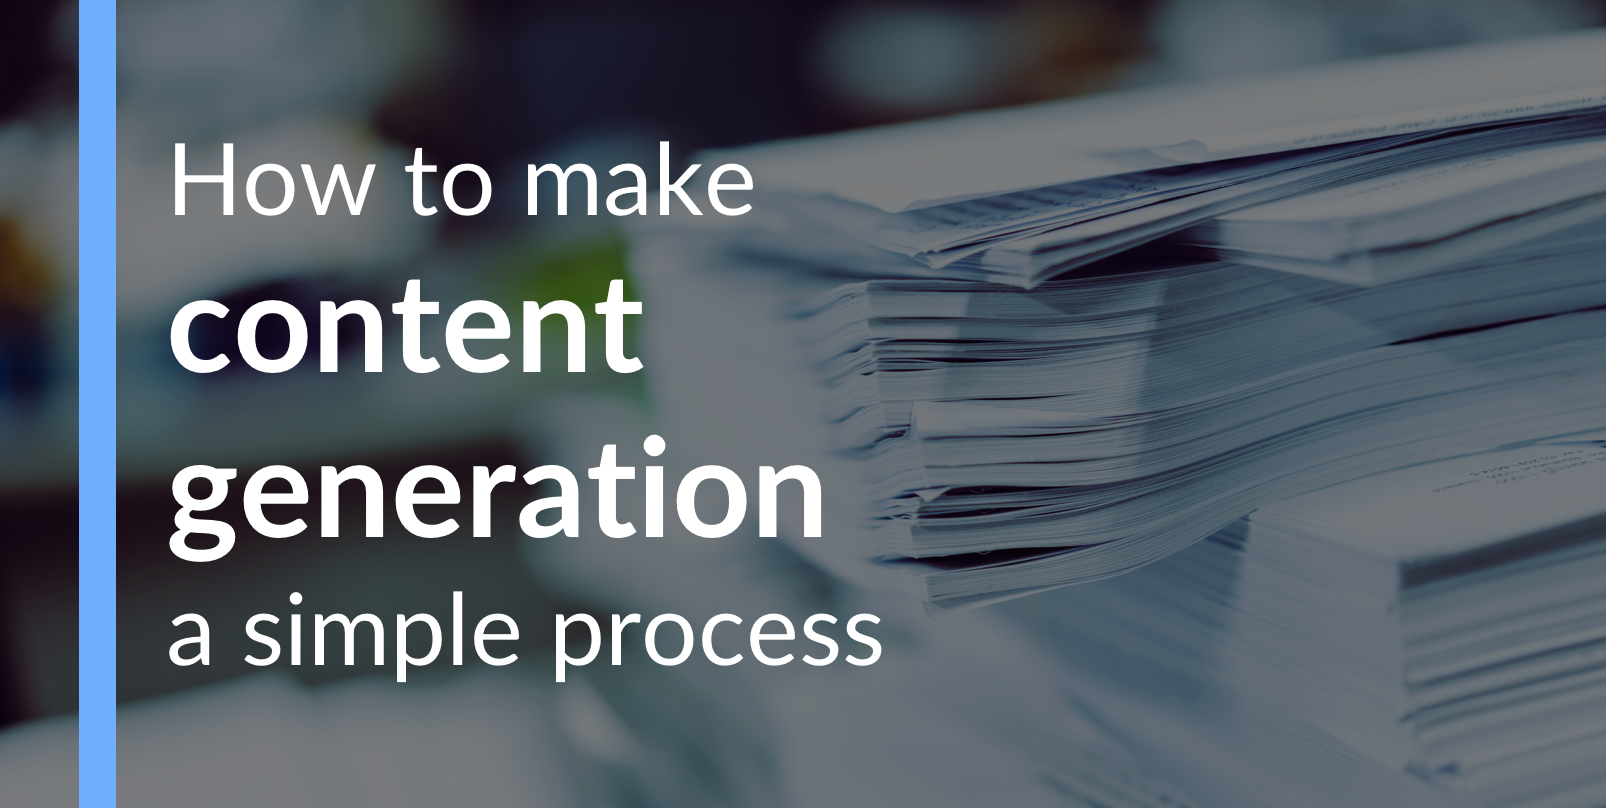 How to make content generation a simple process